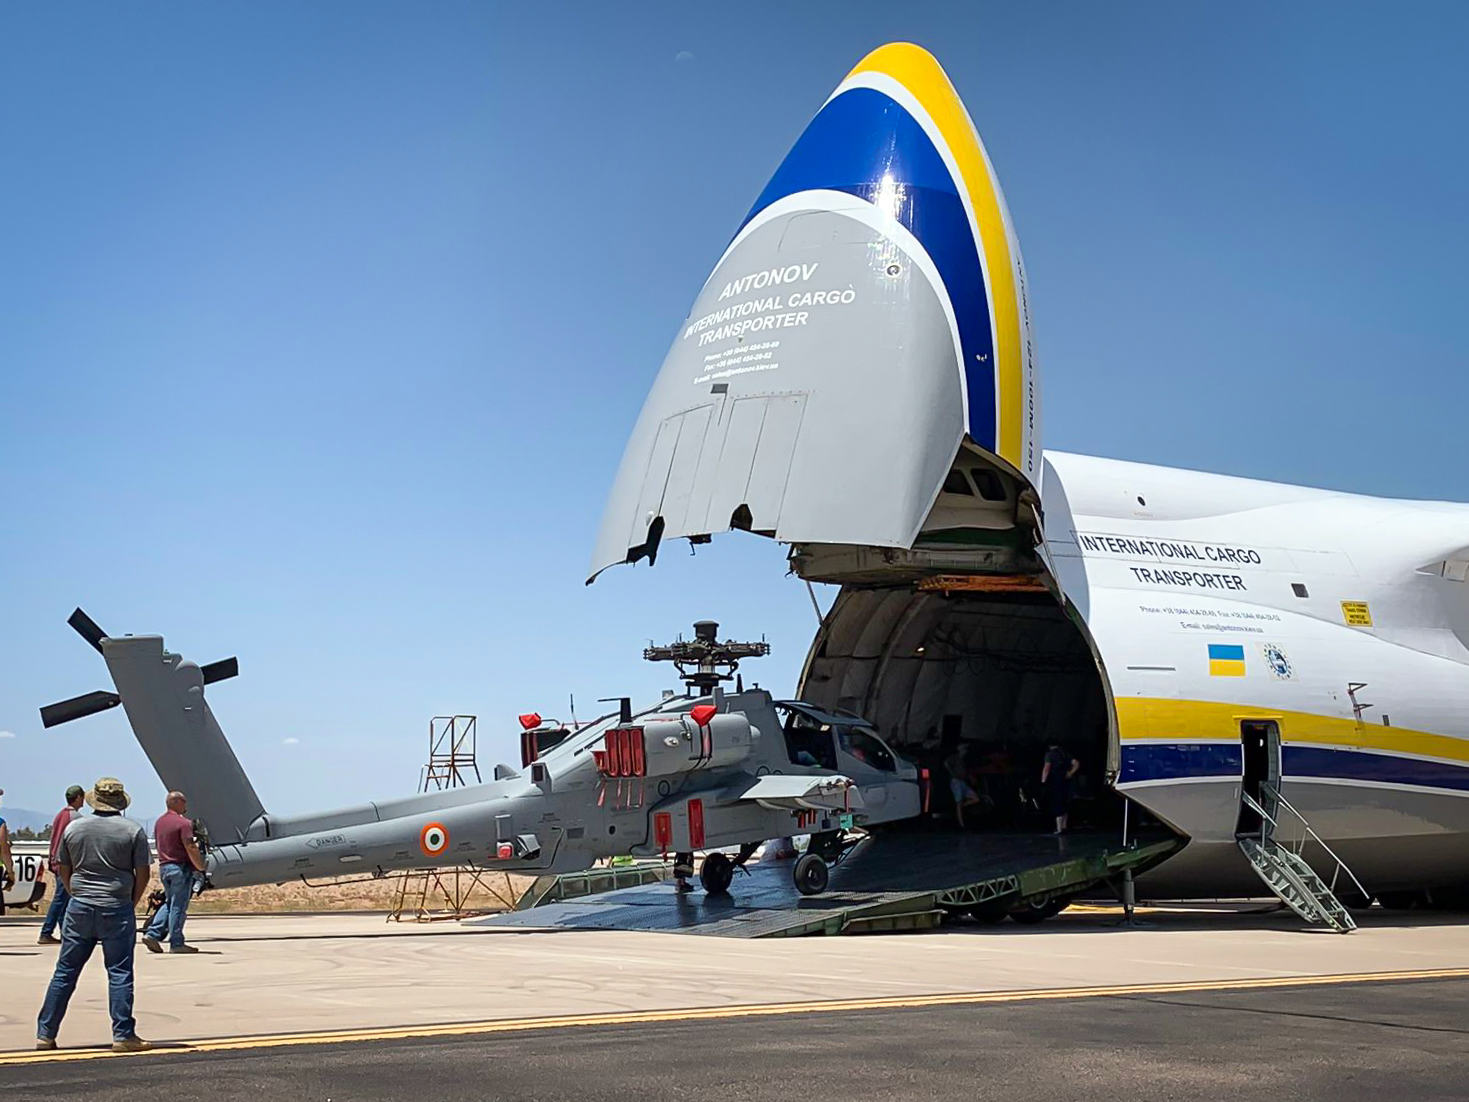 An Apache AH-64 Attack Helicopter is loaded onto an AN-124-100, which can carry up to 5 units.